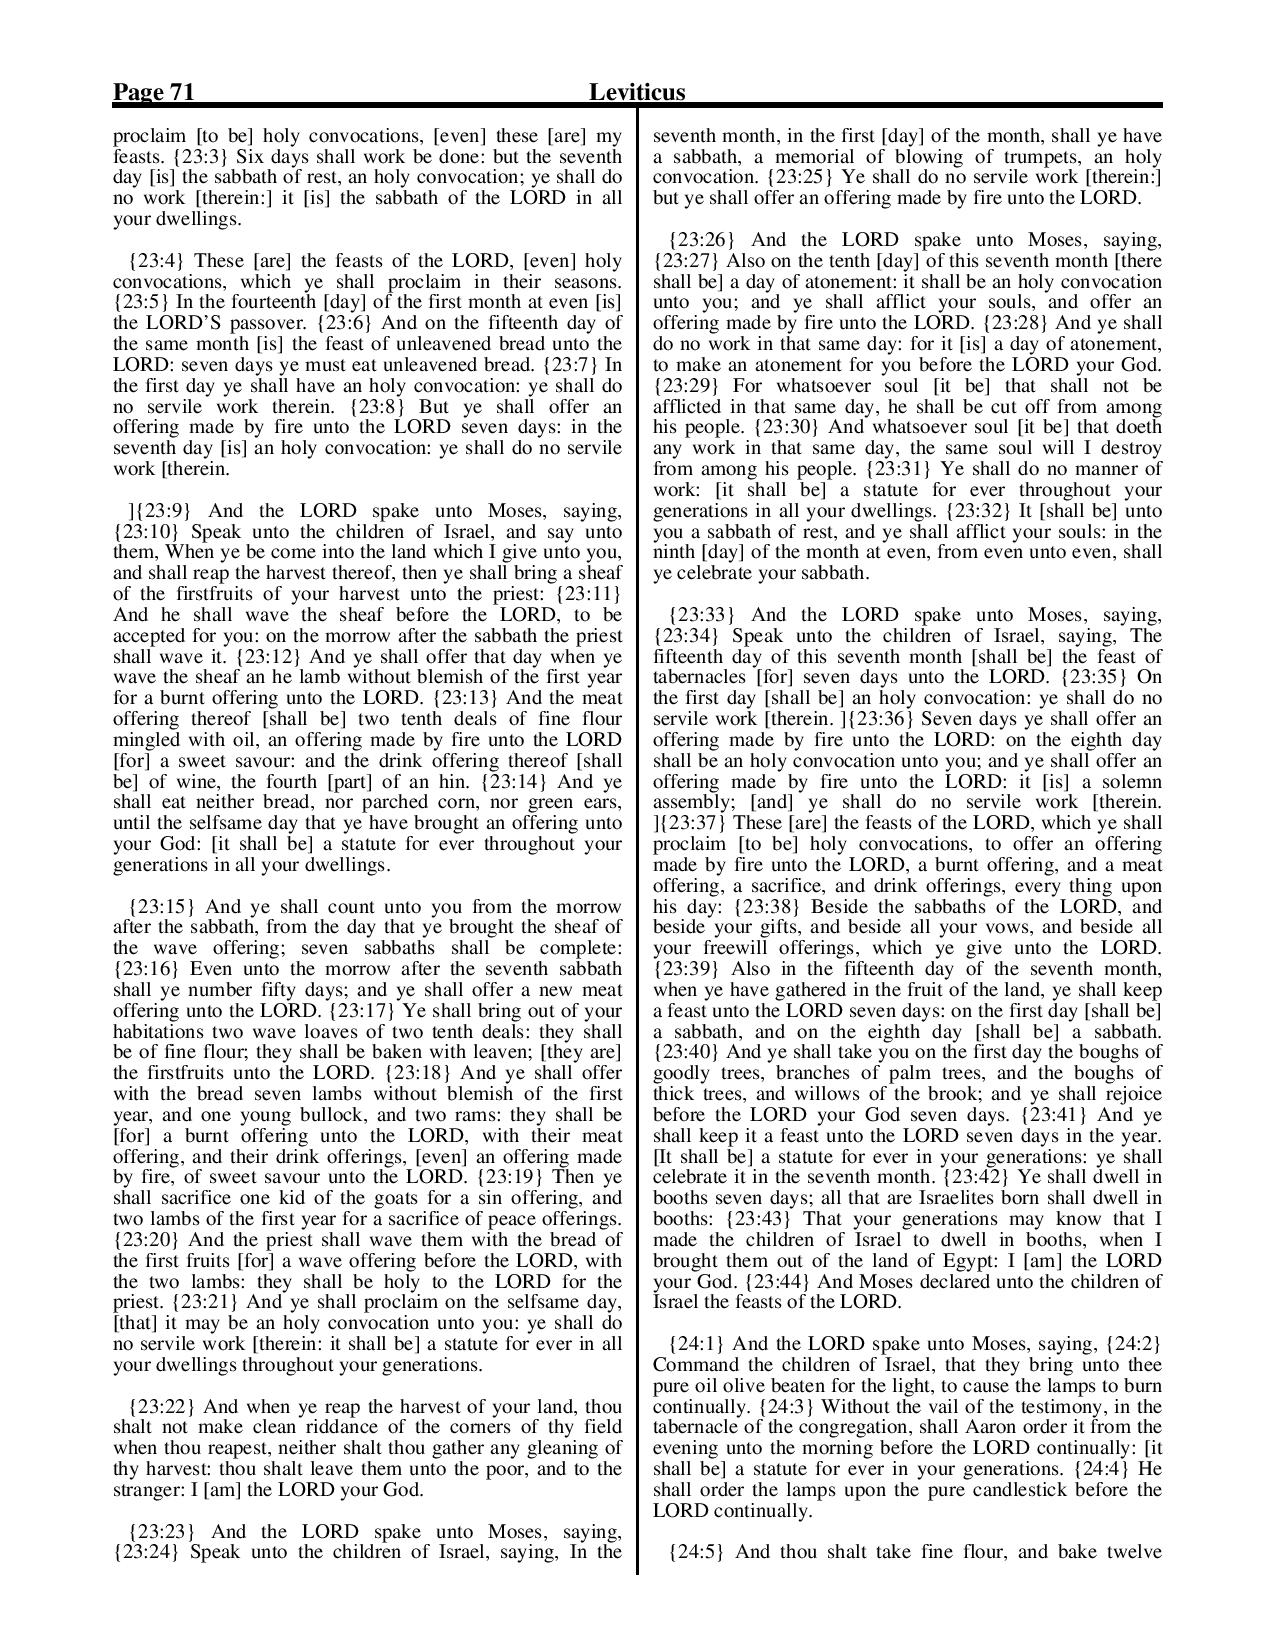 King-James-Bible-KJV-Bible-PDF-page-092